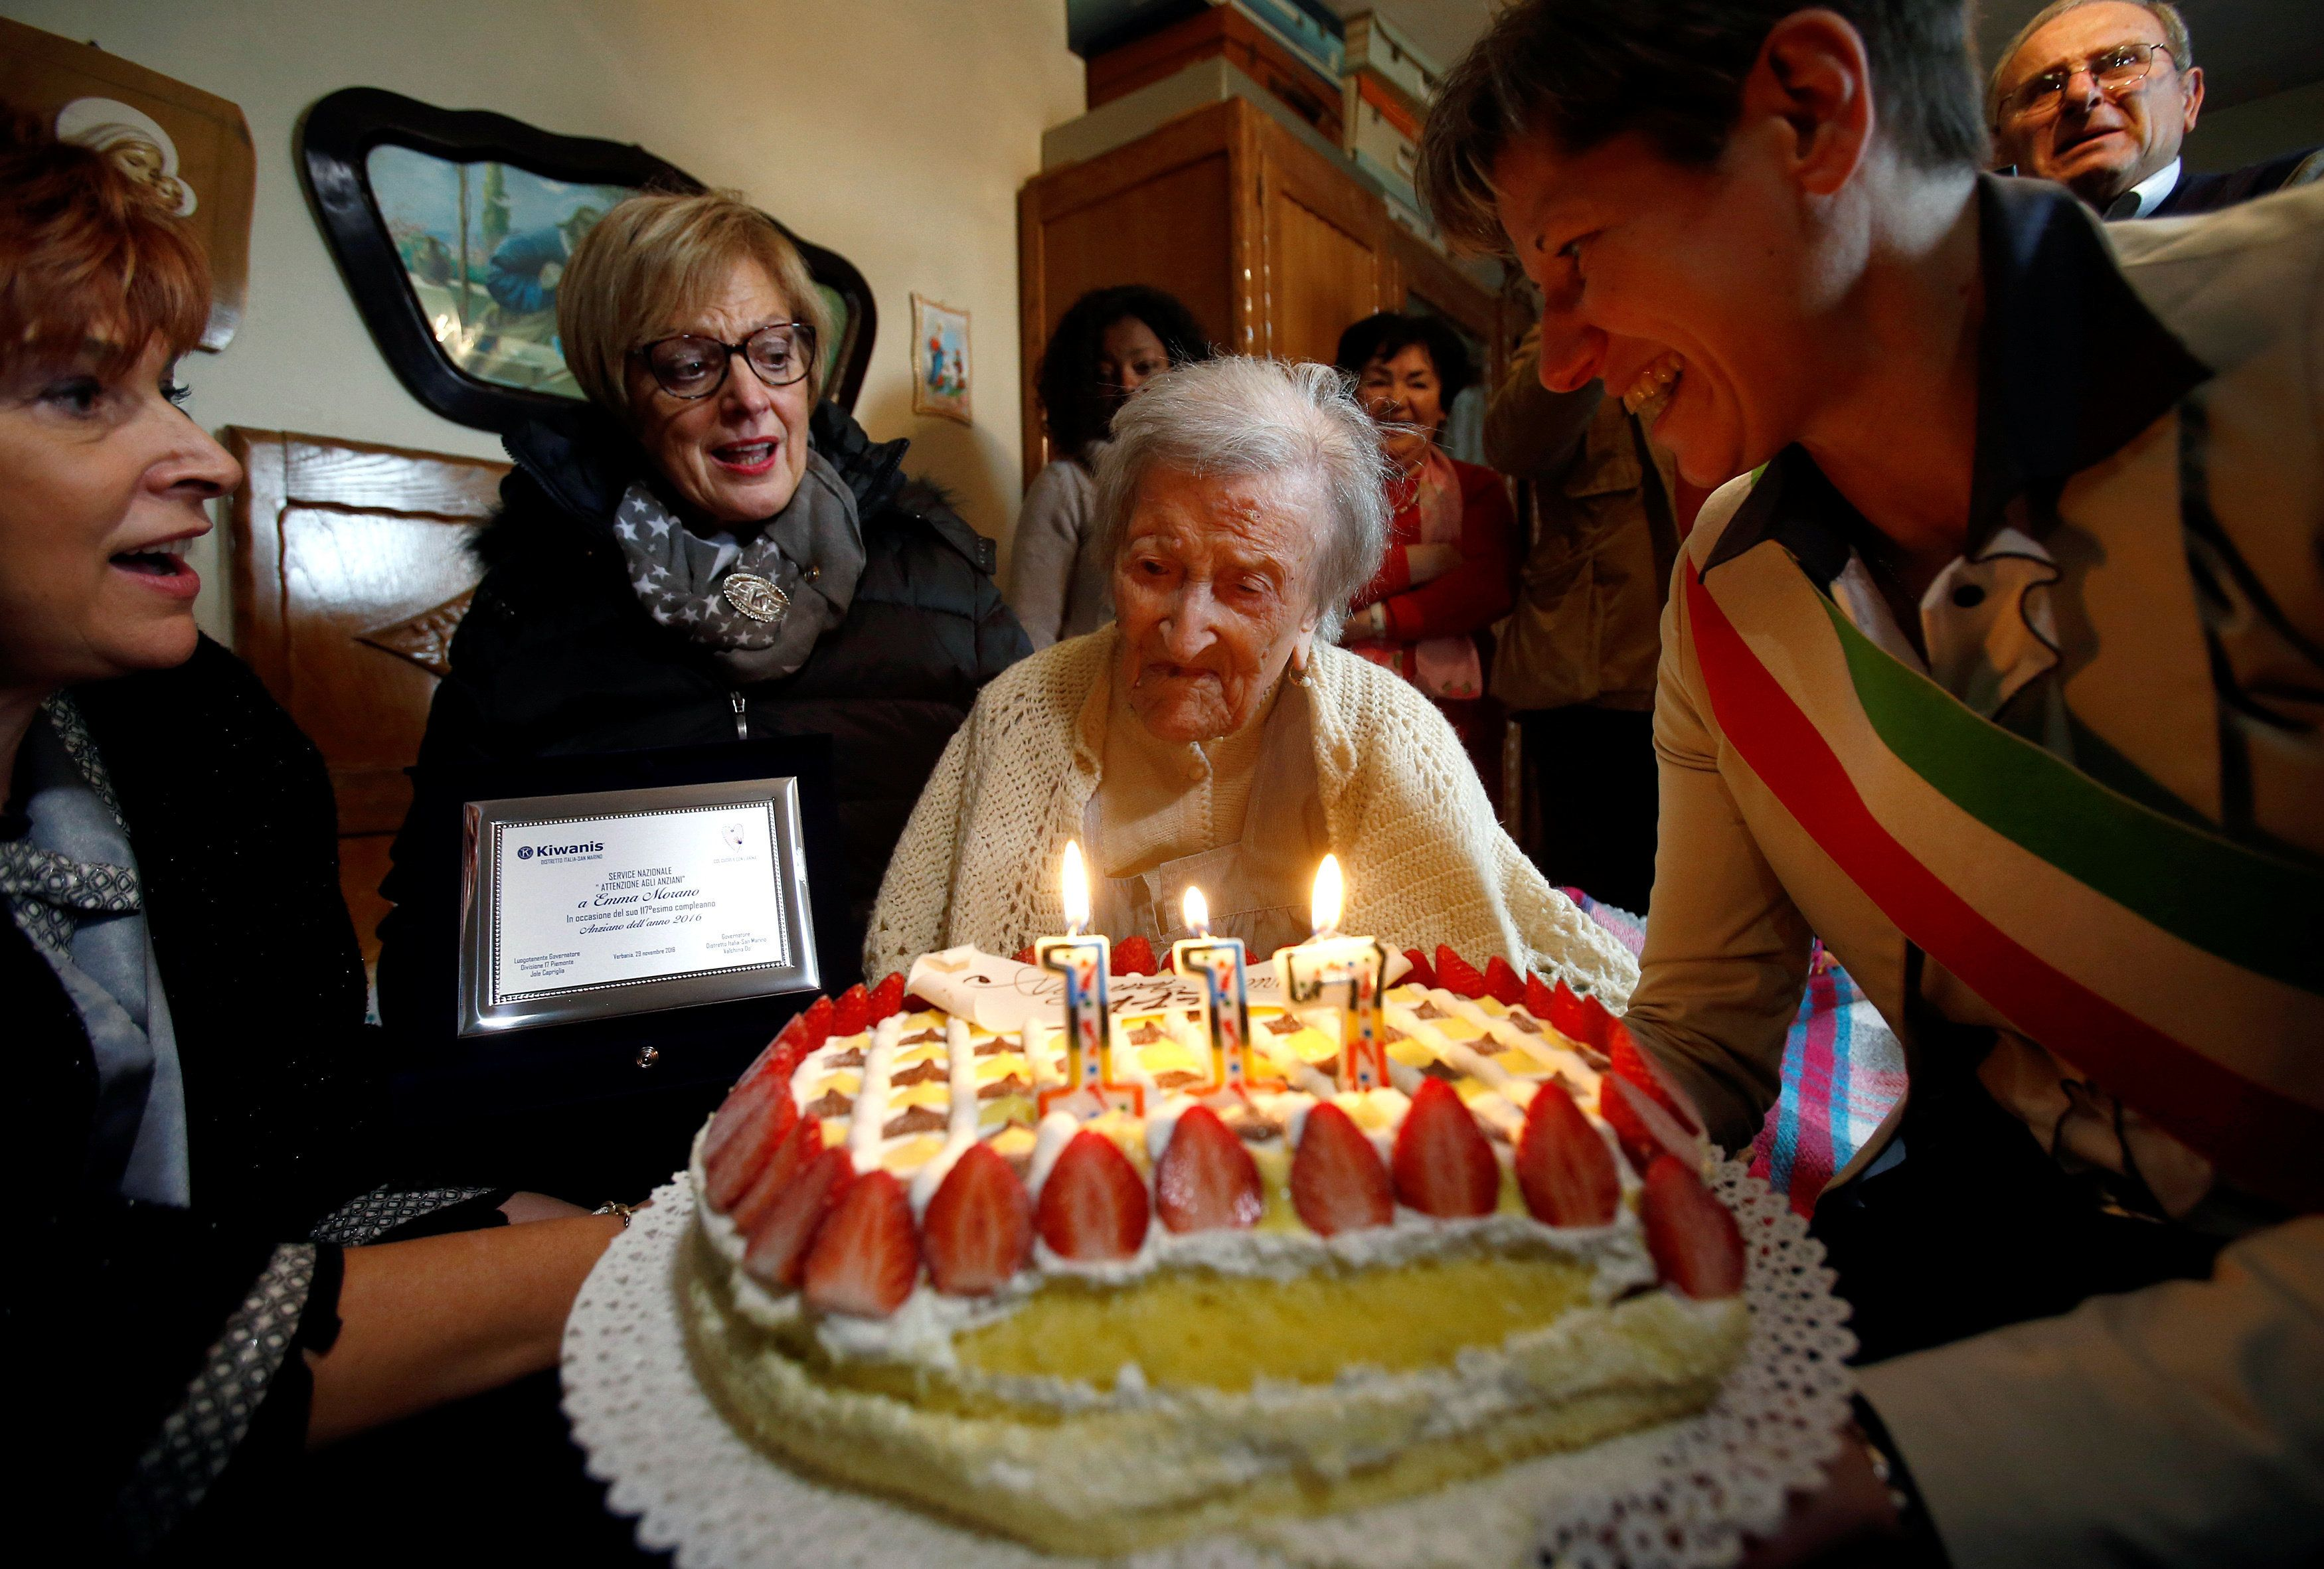 Emma Morano celebrates her 117th birthday in